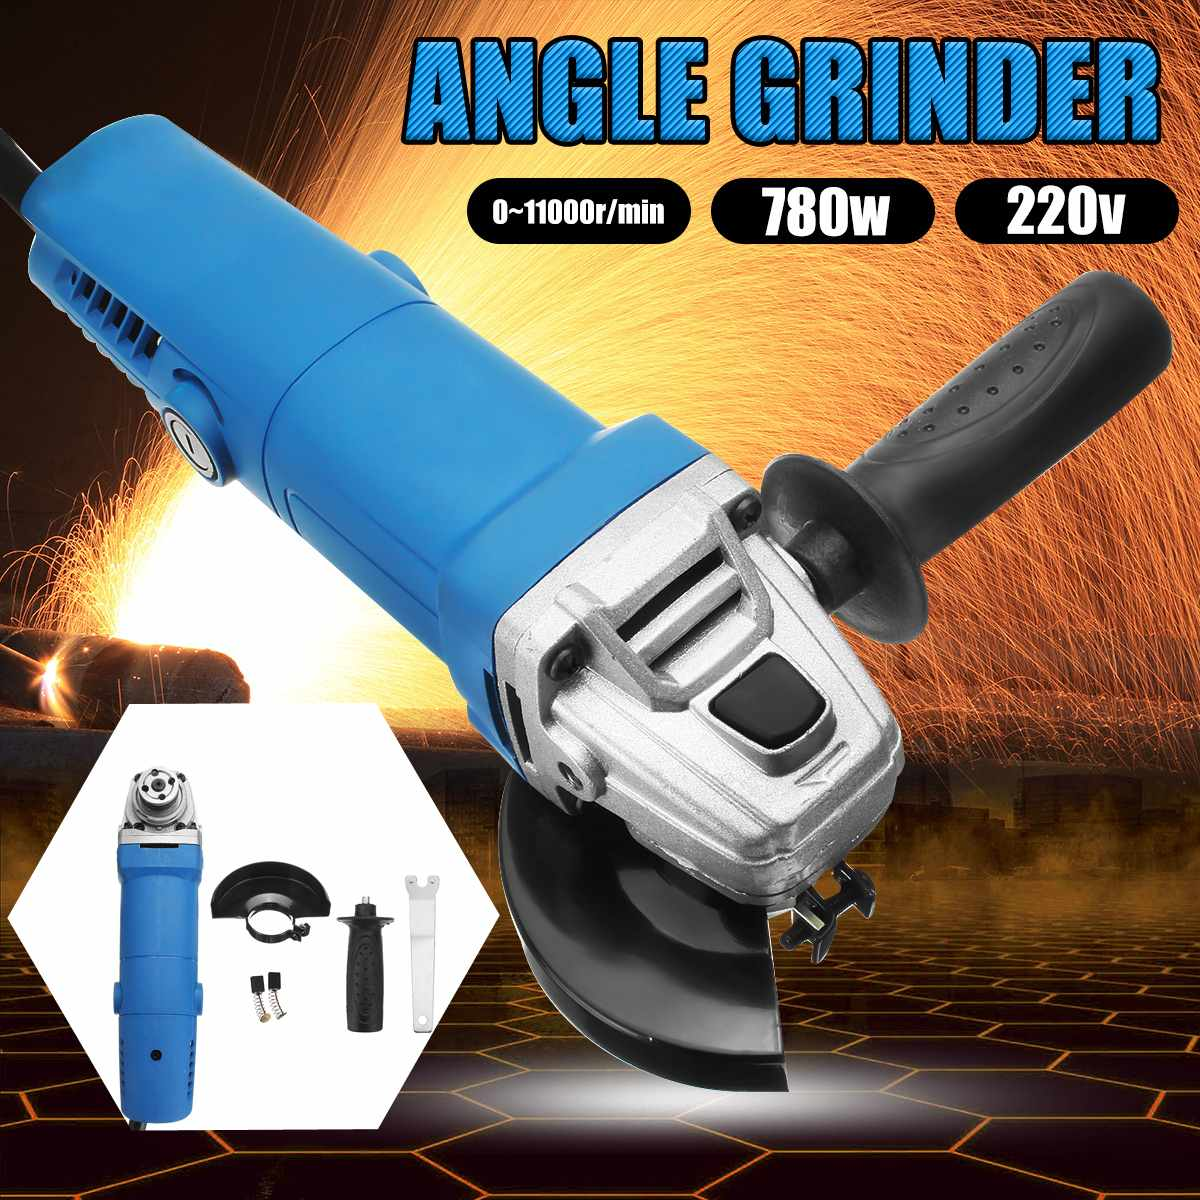 Portable 220V 780W Mini Electric Angle Grinder Side Handle Grinding Cutting Machine Drill Engraver Rotary For Metal Wood Working 8mm 10mm angle grinder auxiliary side handle electric drill grinding machine for rotary hammer power tools accessories w315